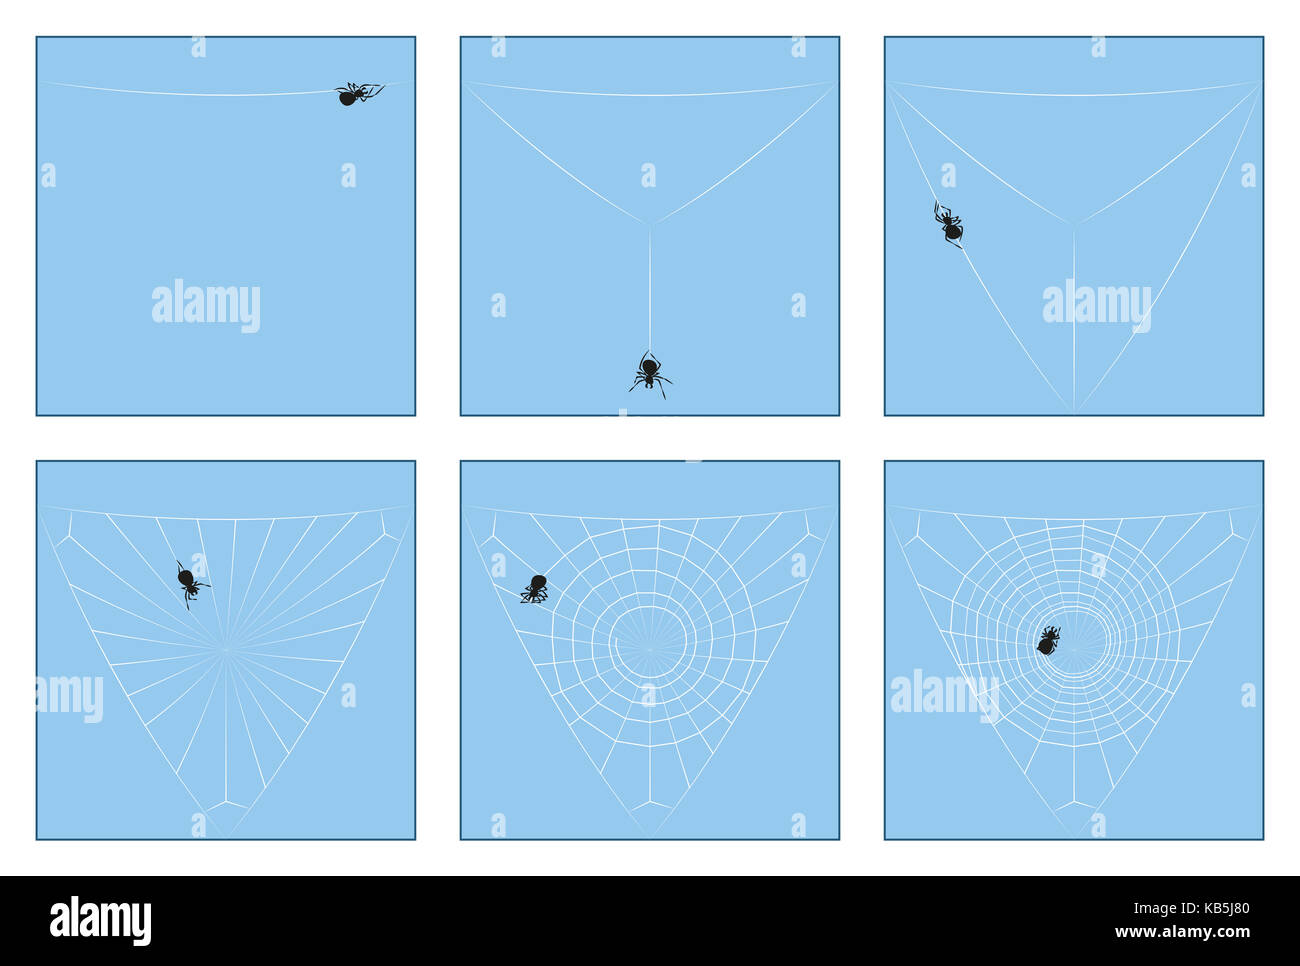 Spider web - construction manual in six stages from the first spinning thread to the complete orb web, depicted - Stock Image